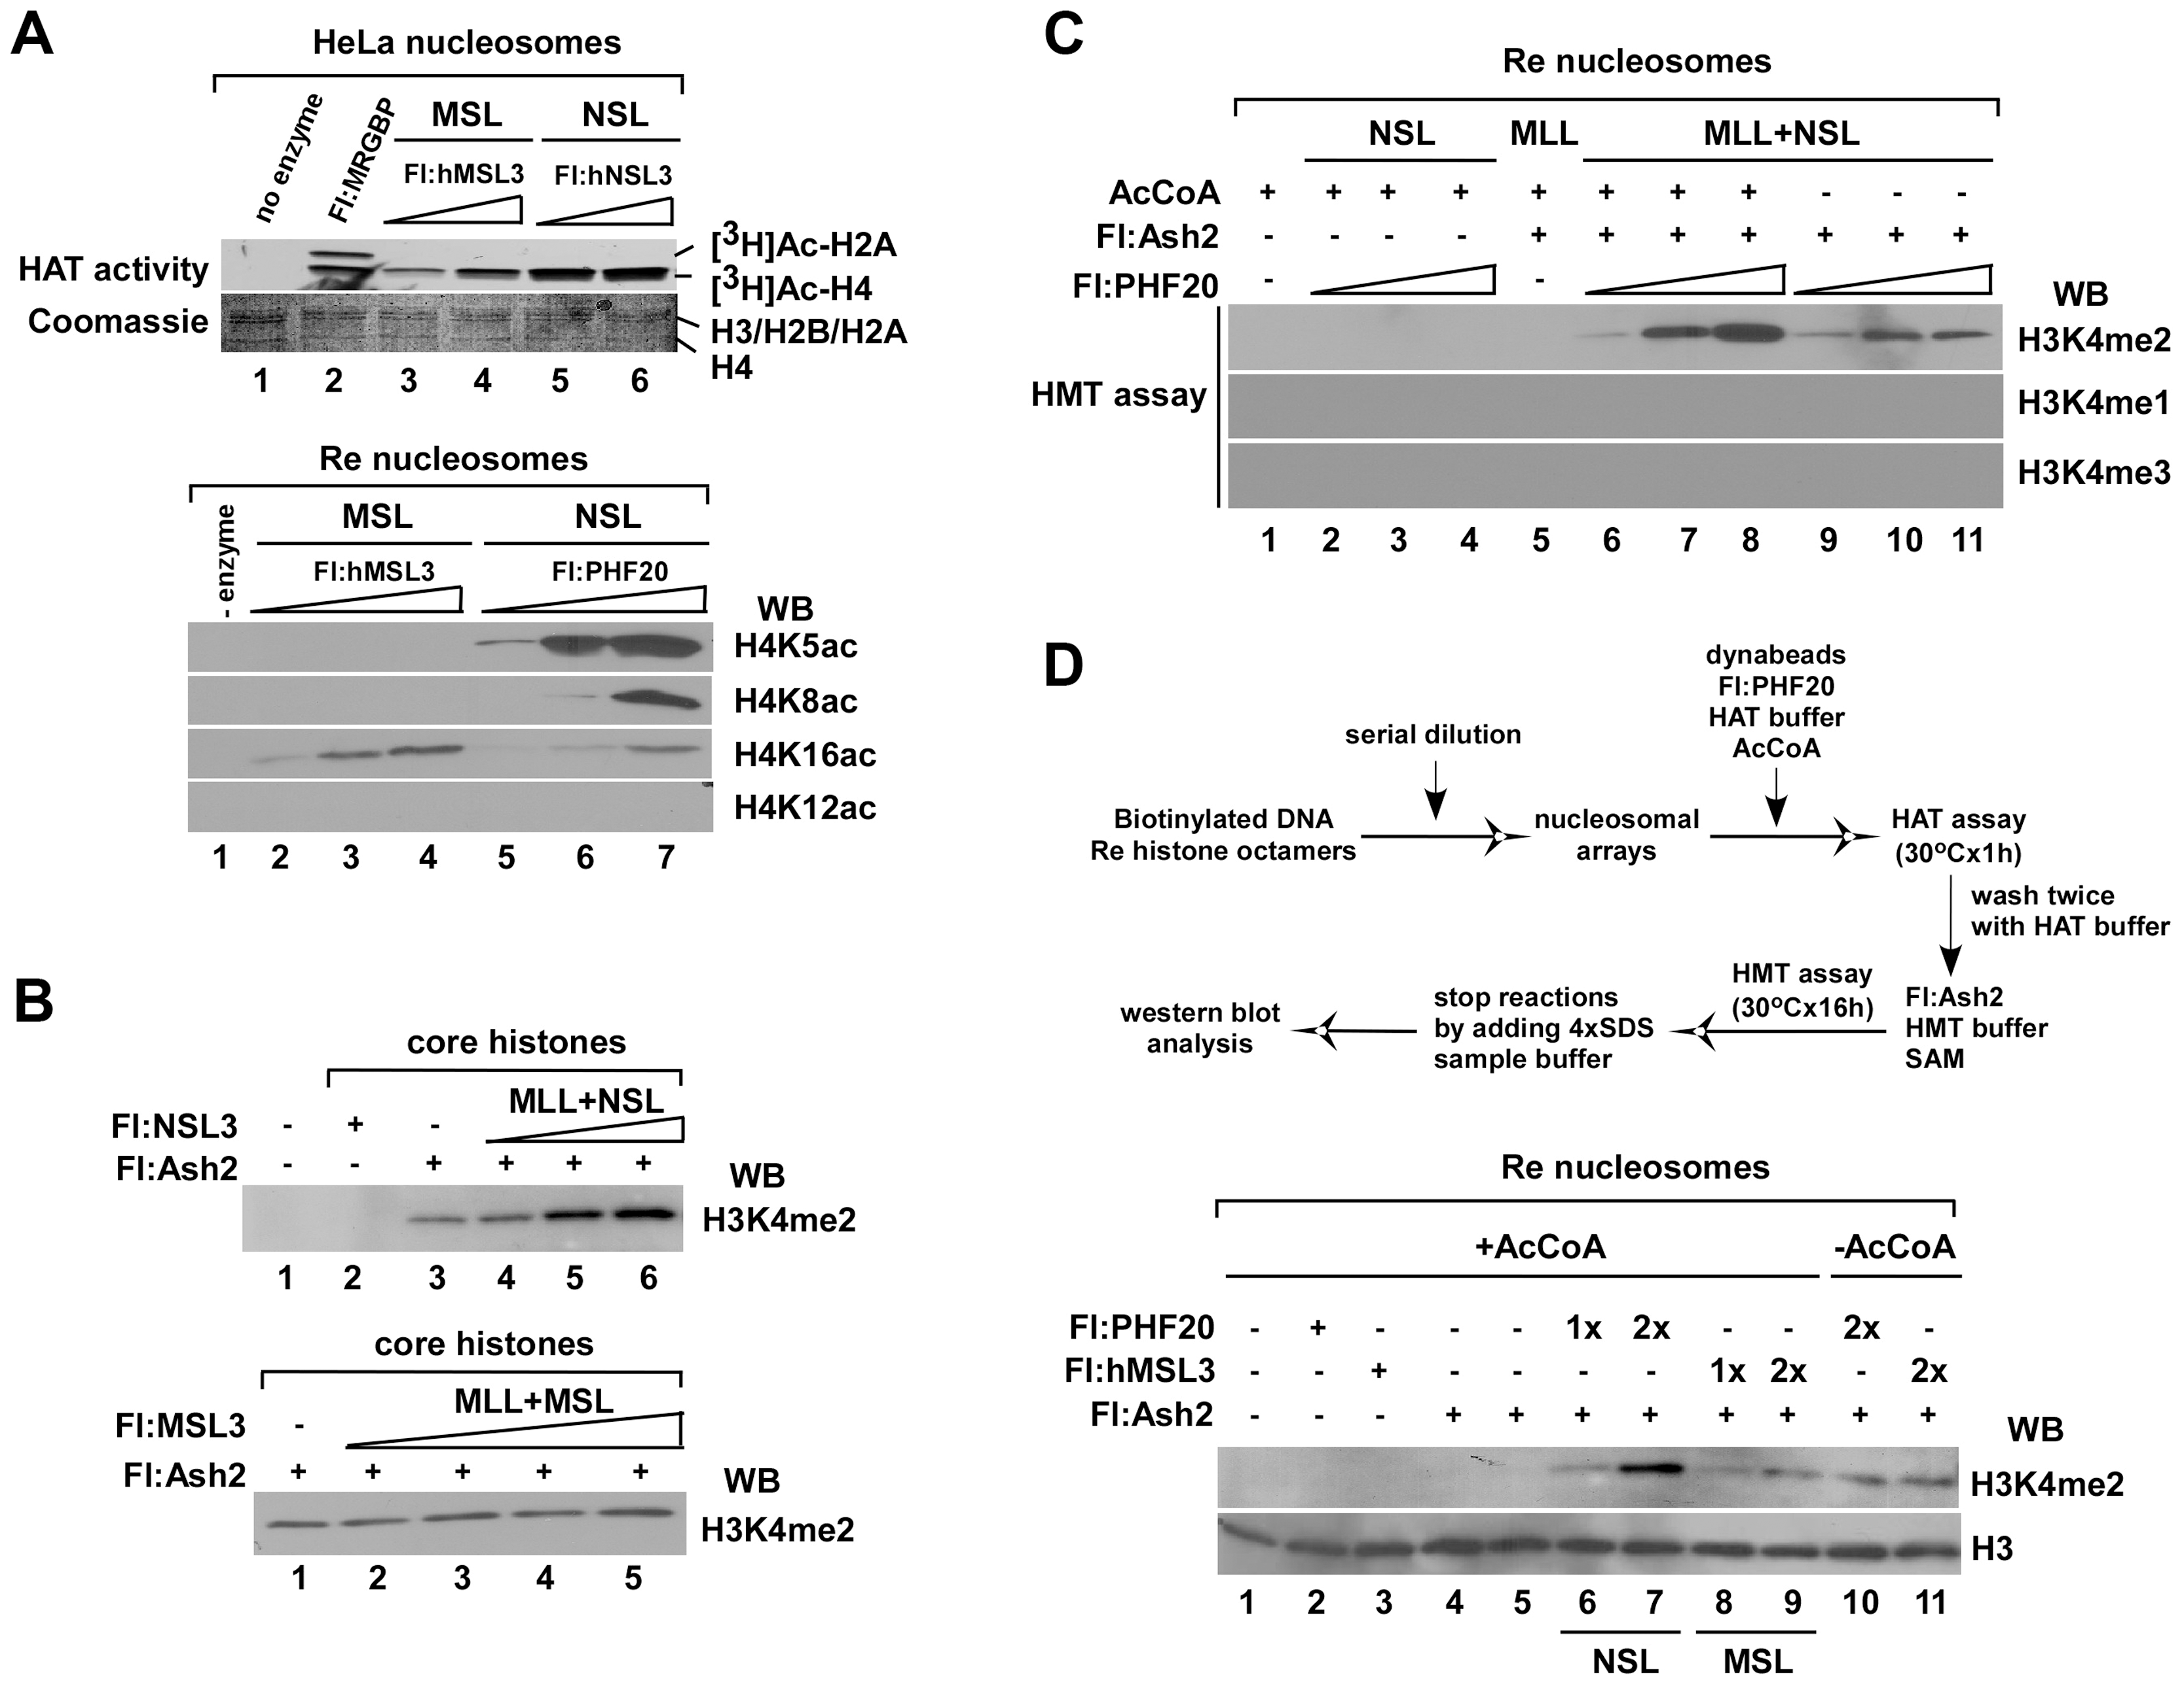 The HAT NSL complex, but not the MSL complex, promotes H3K4me2 by Flag-Ash2 <i>in vitro</i>.